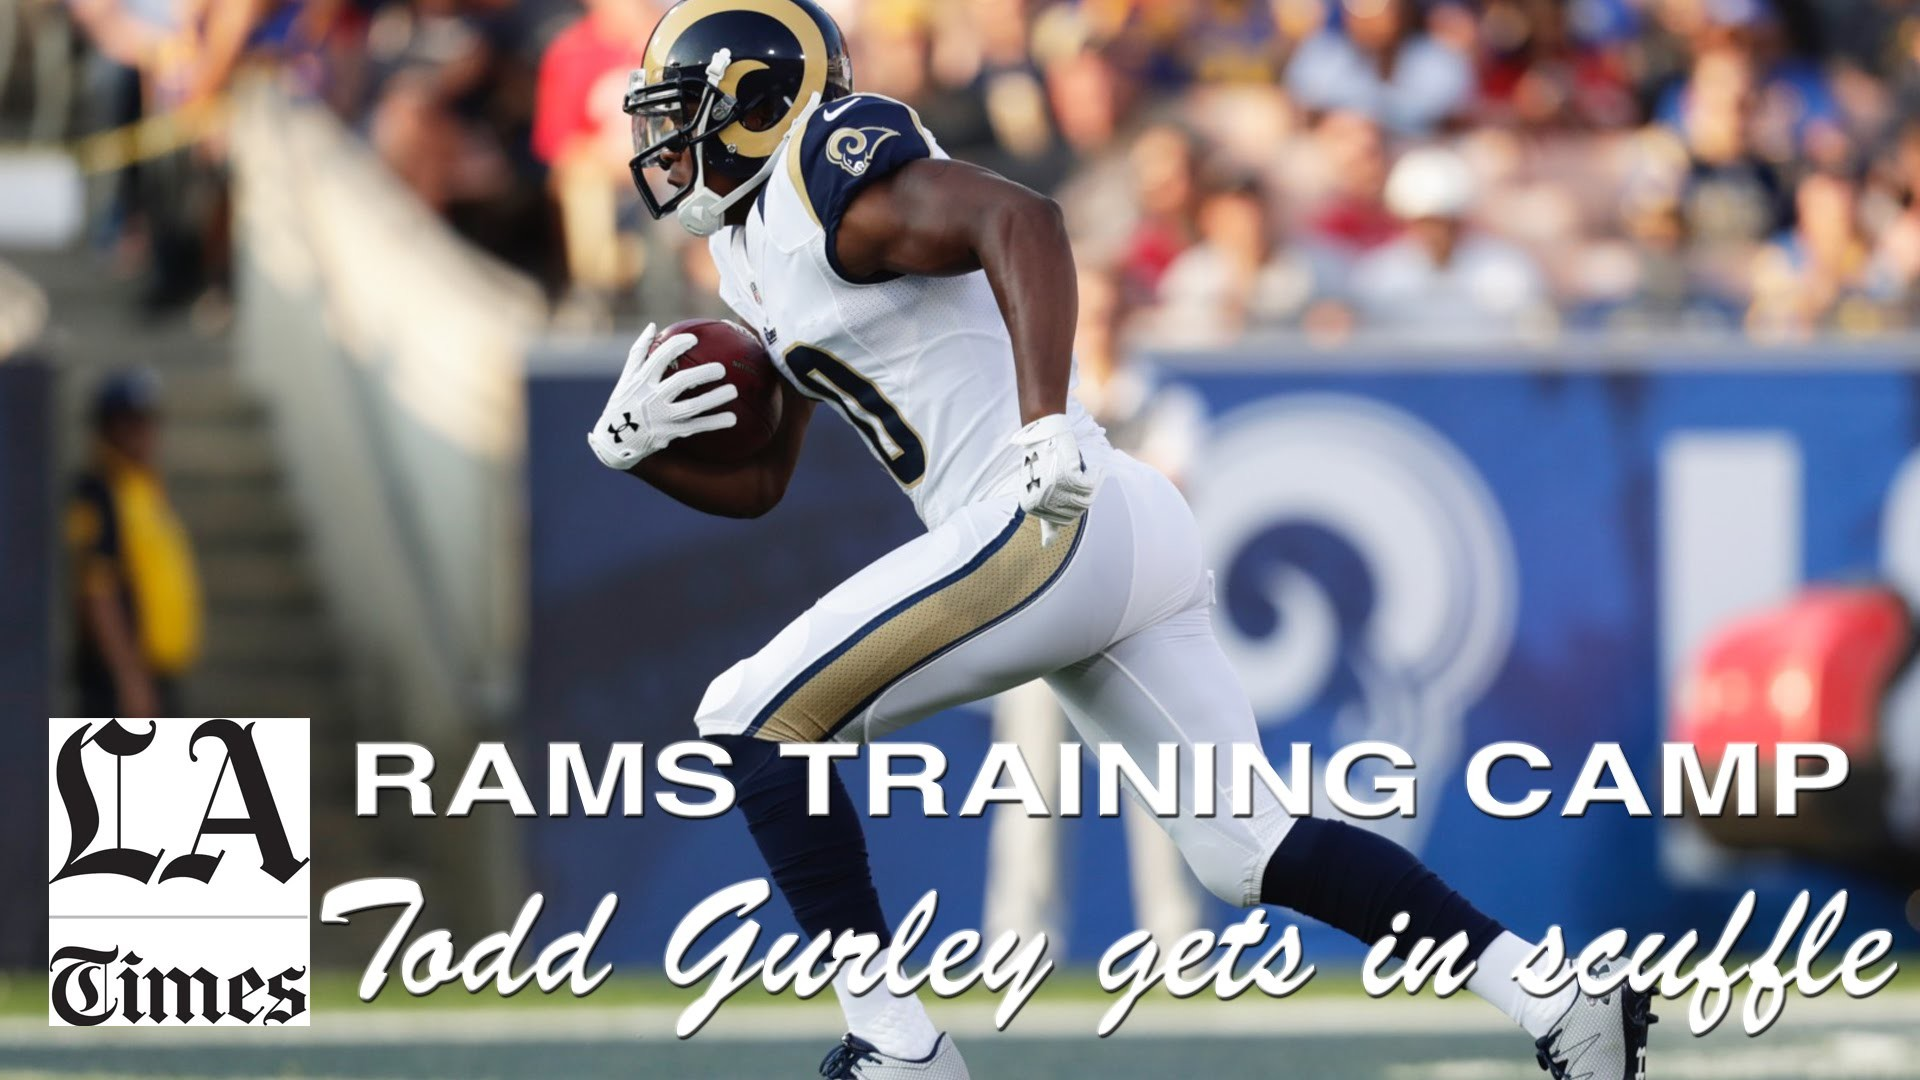 Todd Gurley, Rams players break out in scuffle during practice